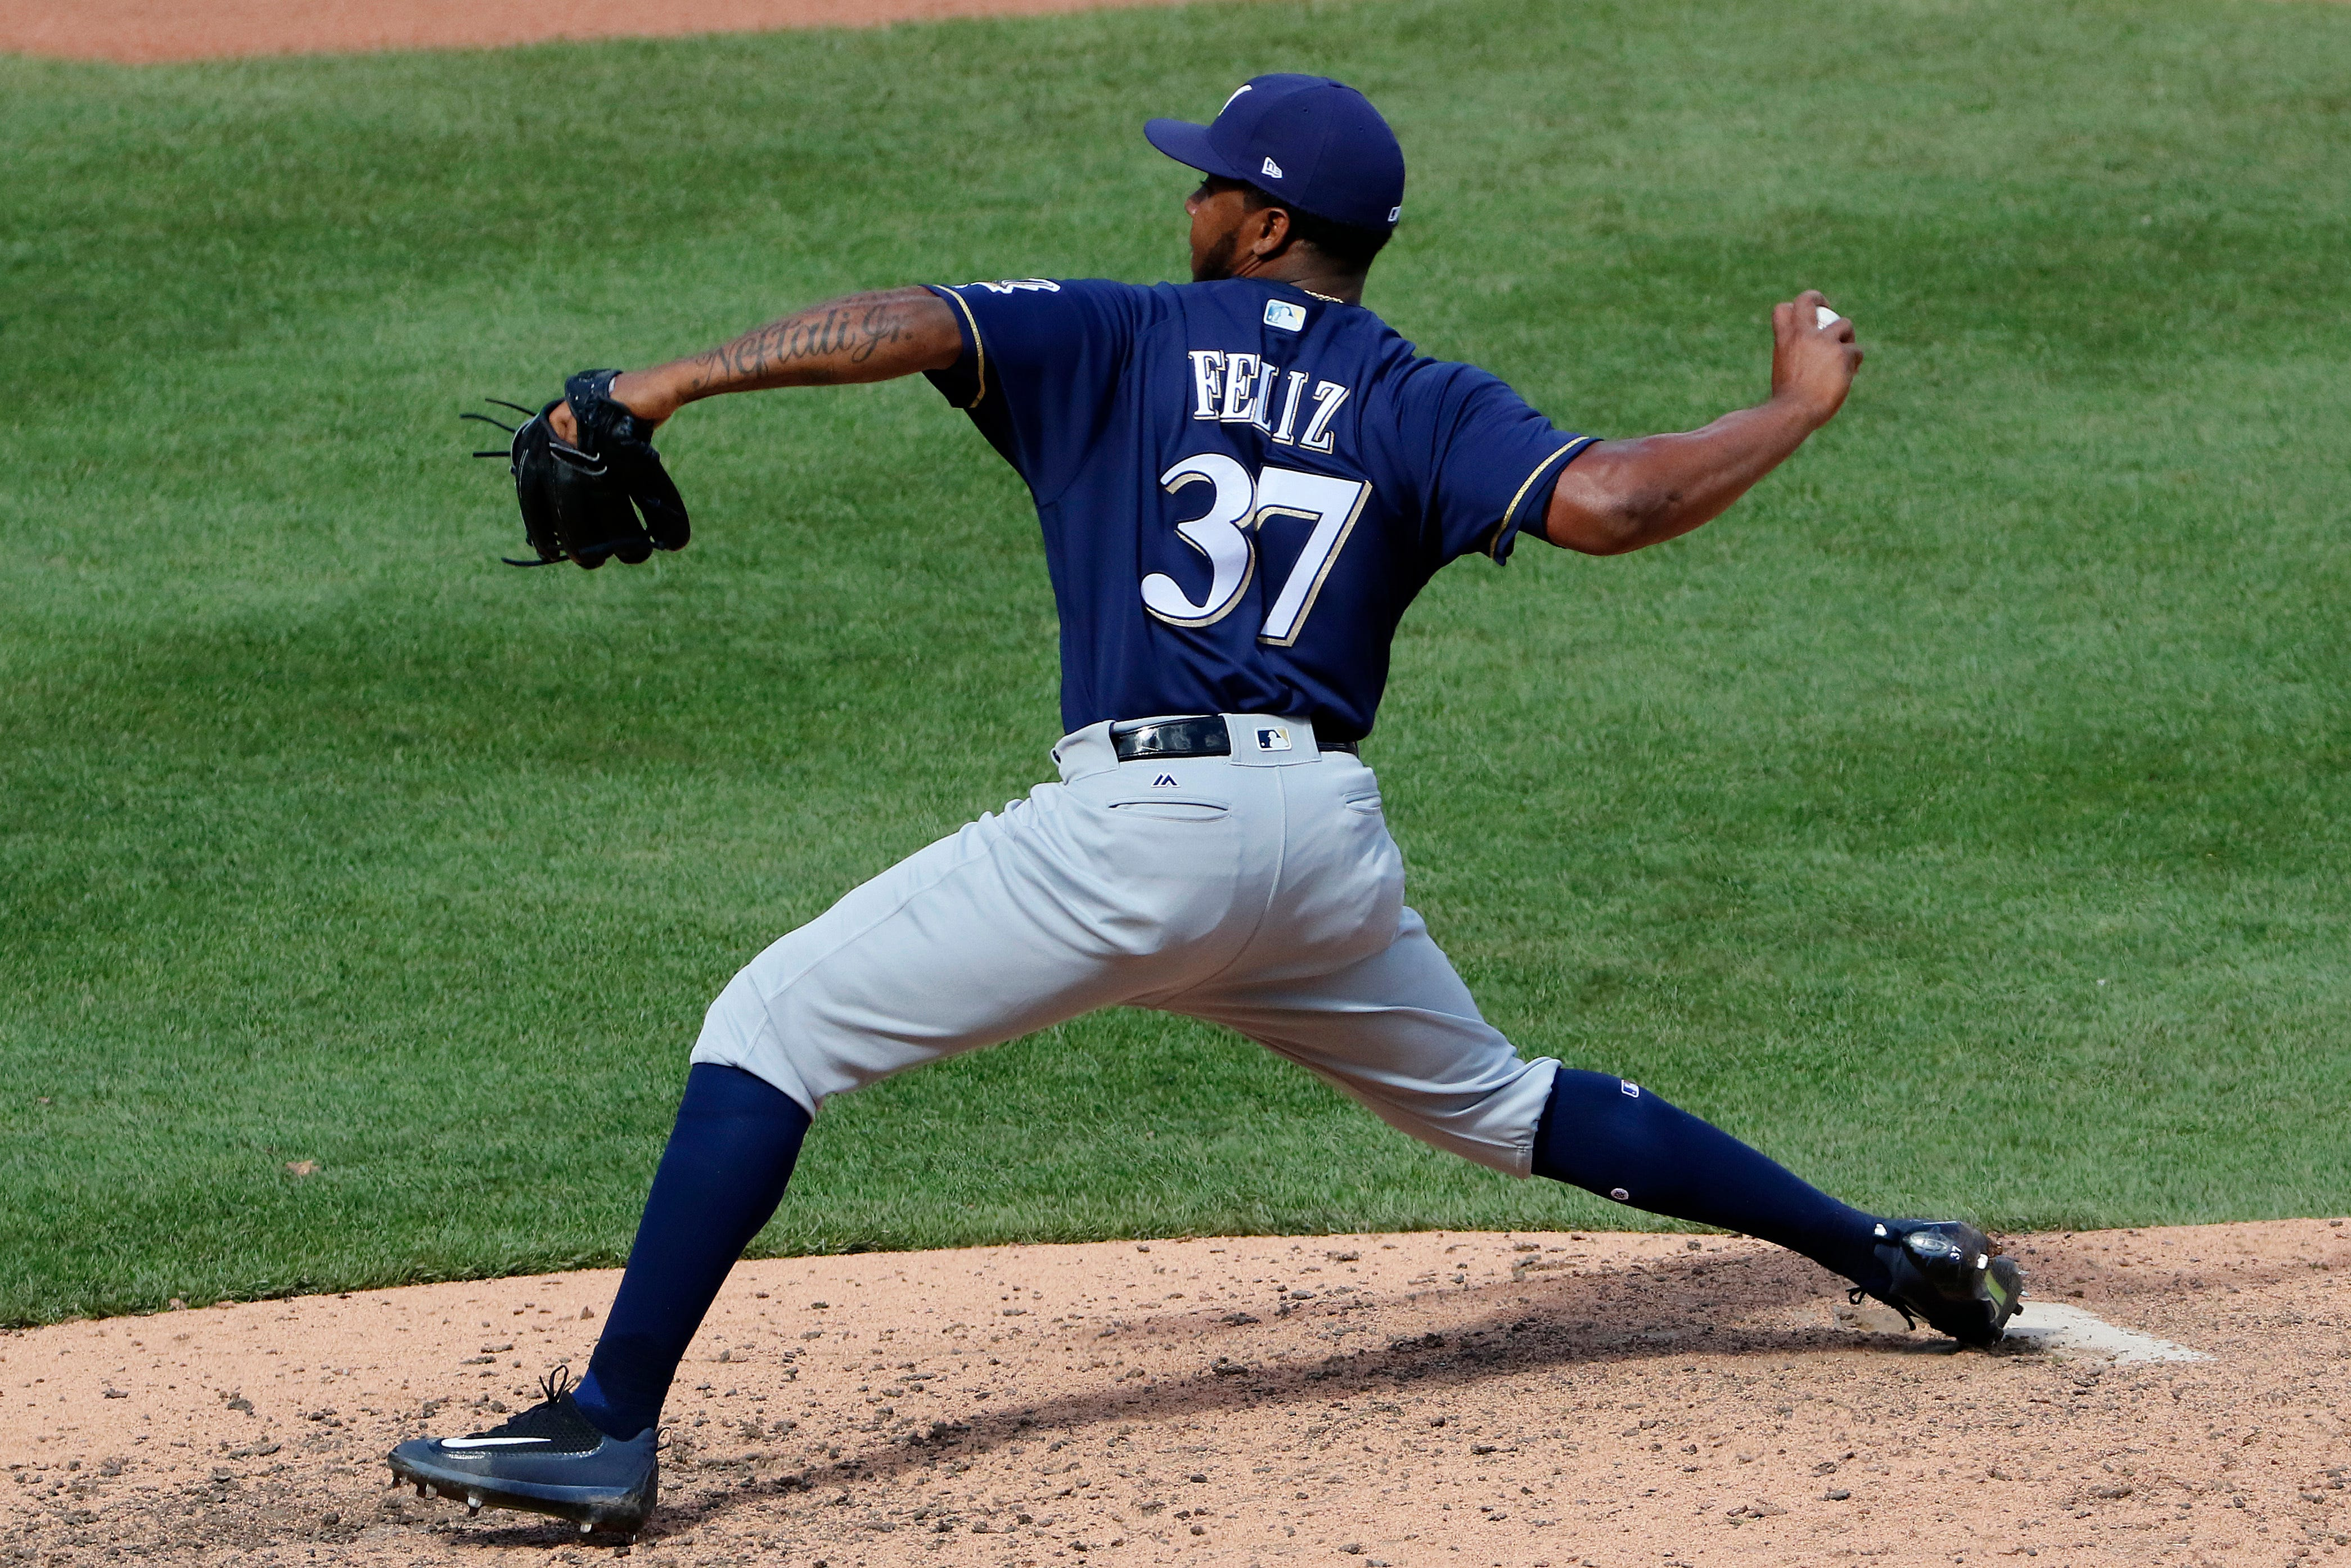 Brewers reliever Neftali Feliz made adjustment that might have put him back on track